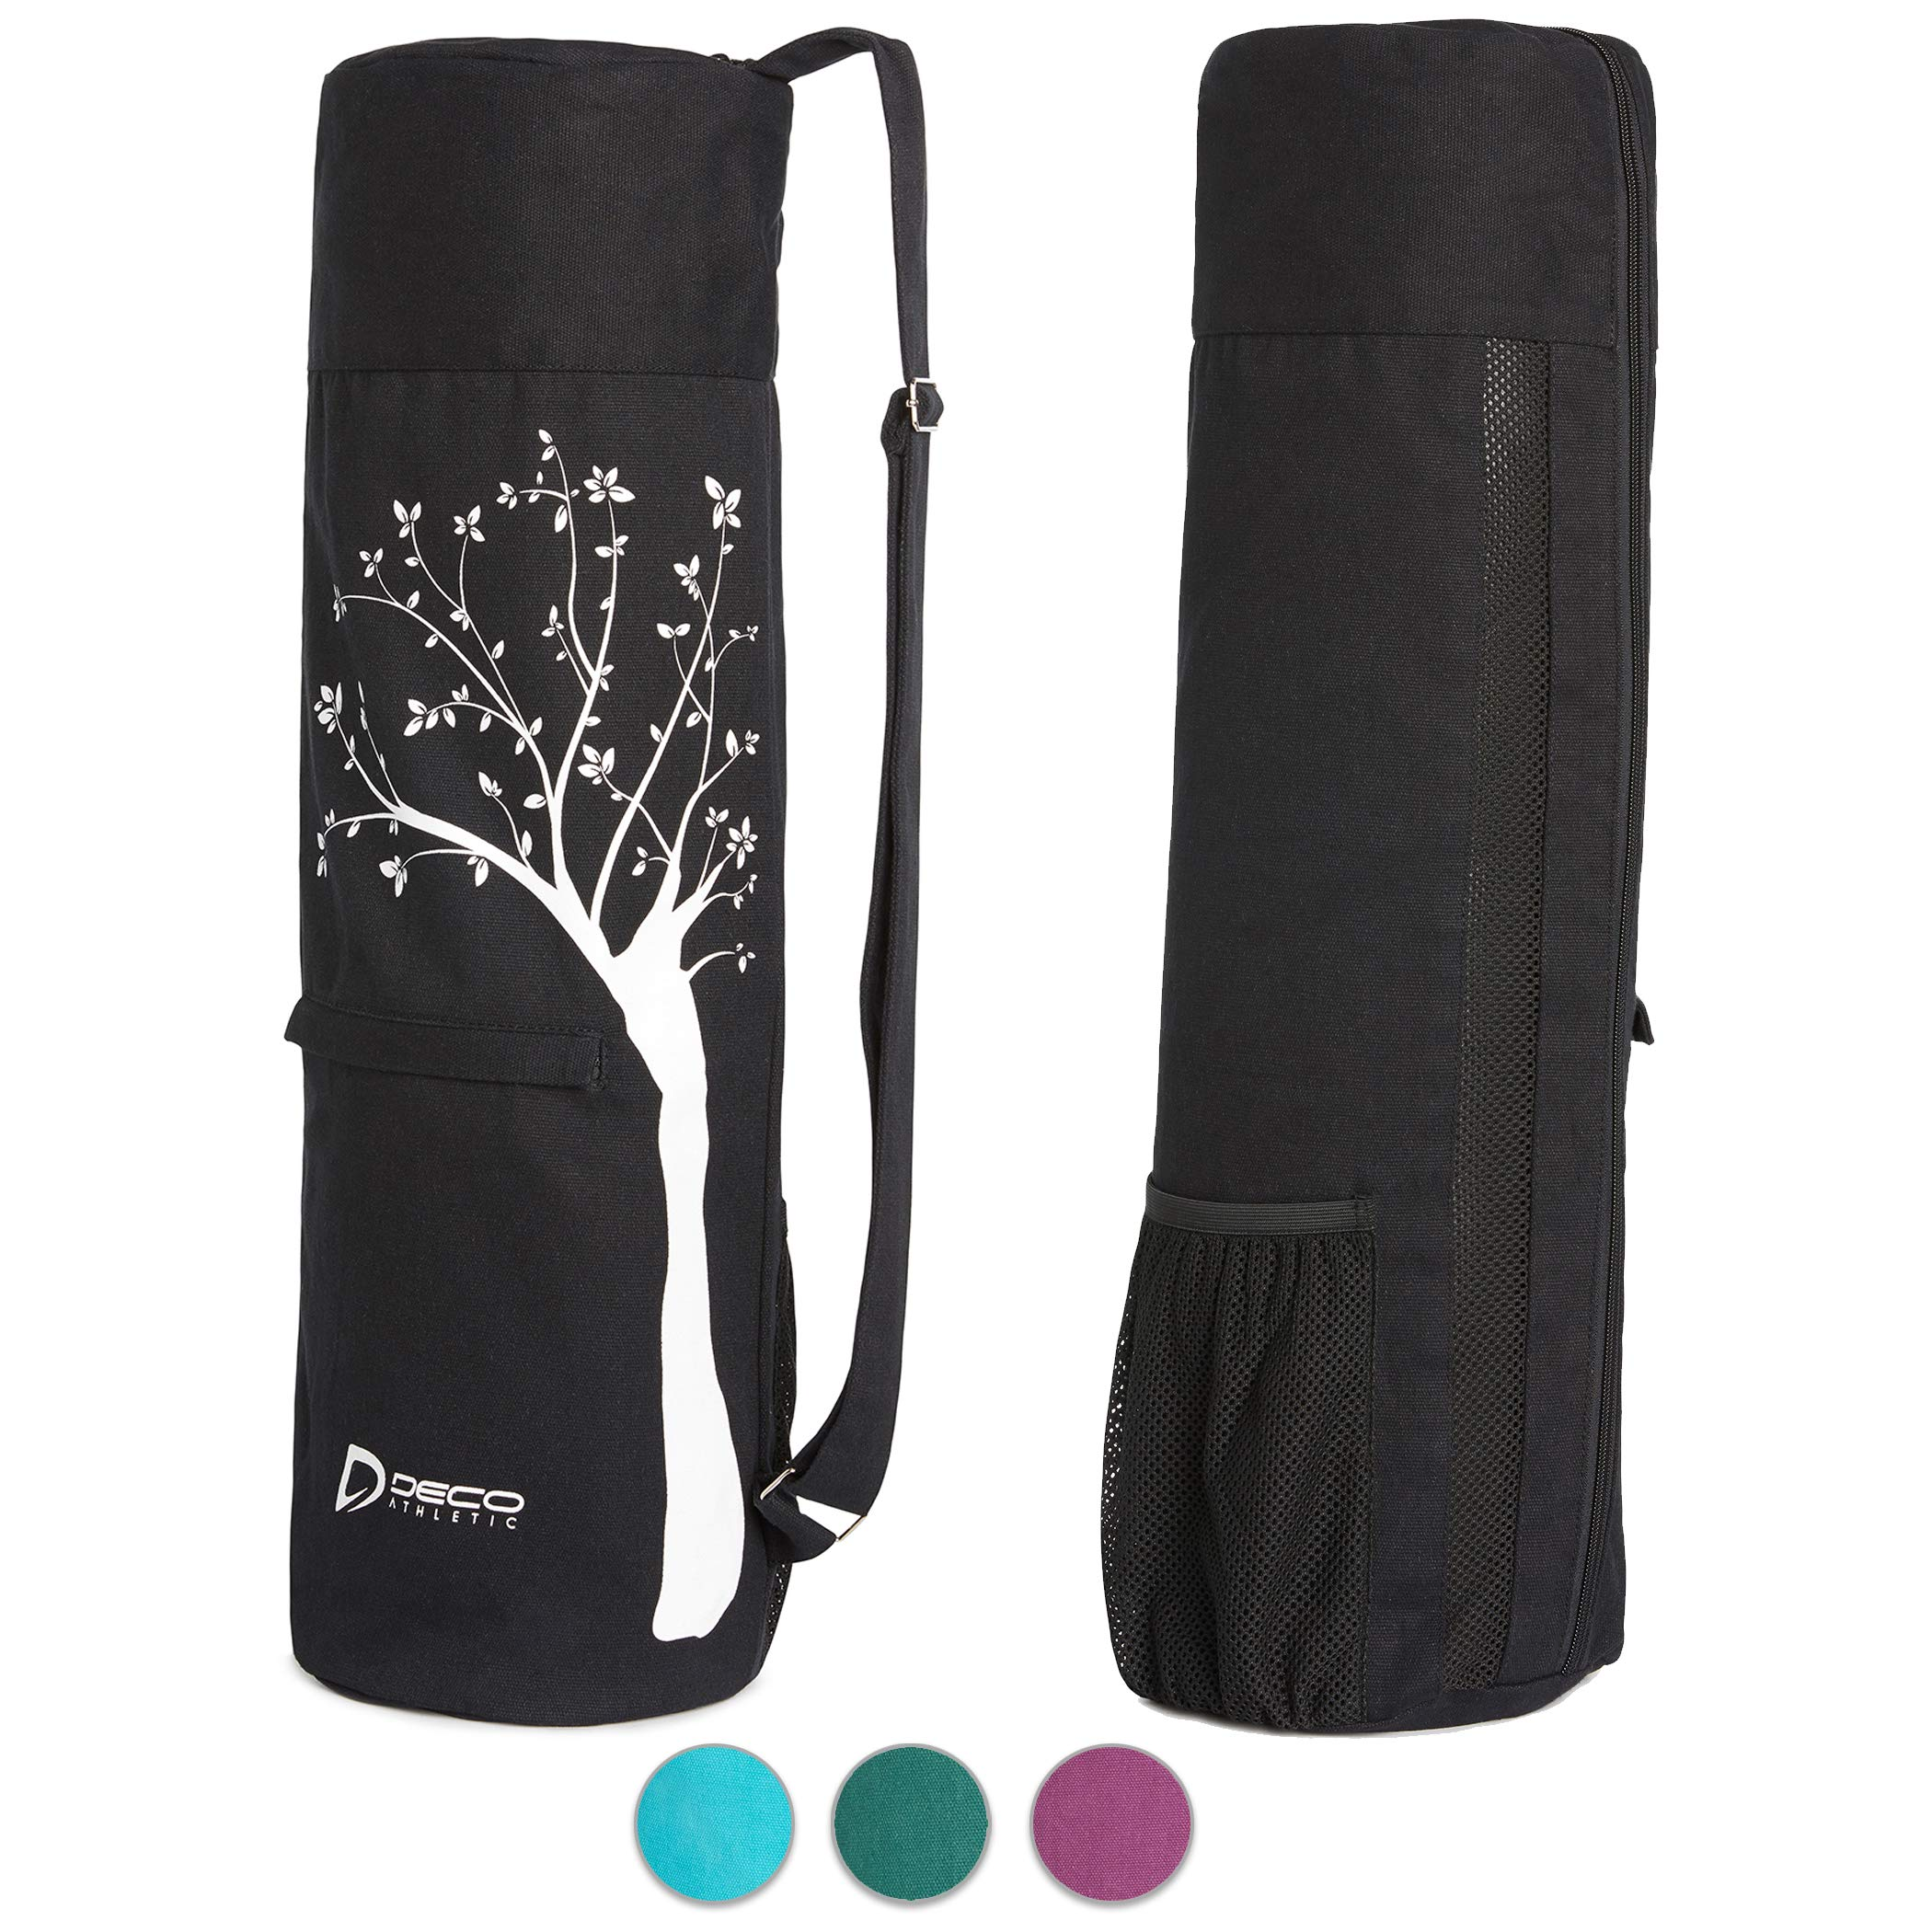 Deco Athletic Black Yoga Mat Bag, fits up to 25 inch mat, one Large Zipped Interior Pocket, one Large mesh Exterior Pocket, Room for Yoga Blanket and Yoga Towel